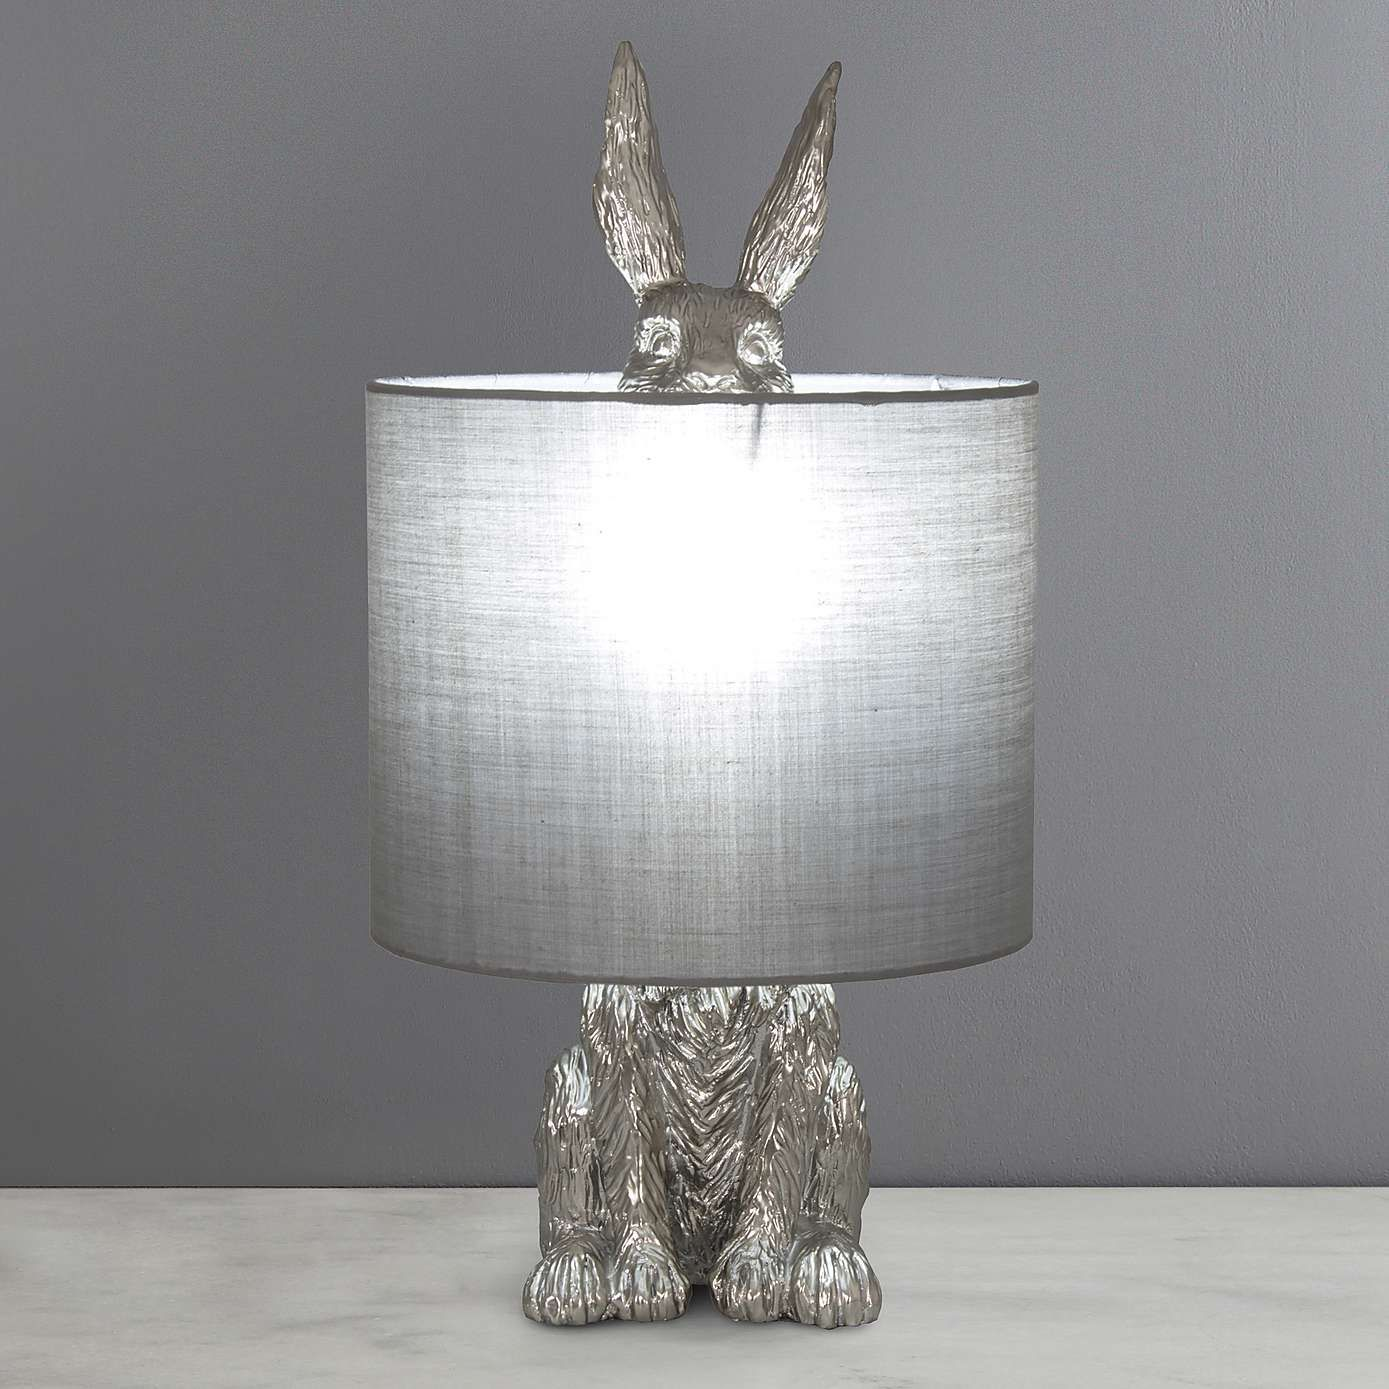 Osmoy Resin Hare Table Lamp Dunelm Lamp Table Lamp Bedside Lamp